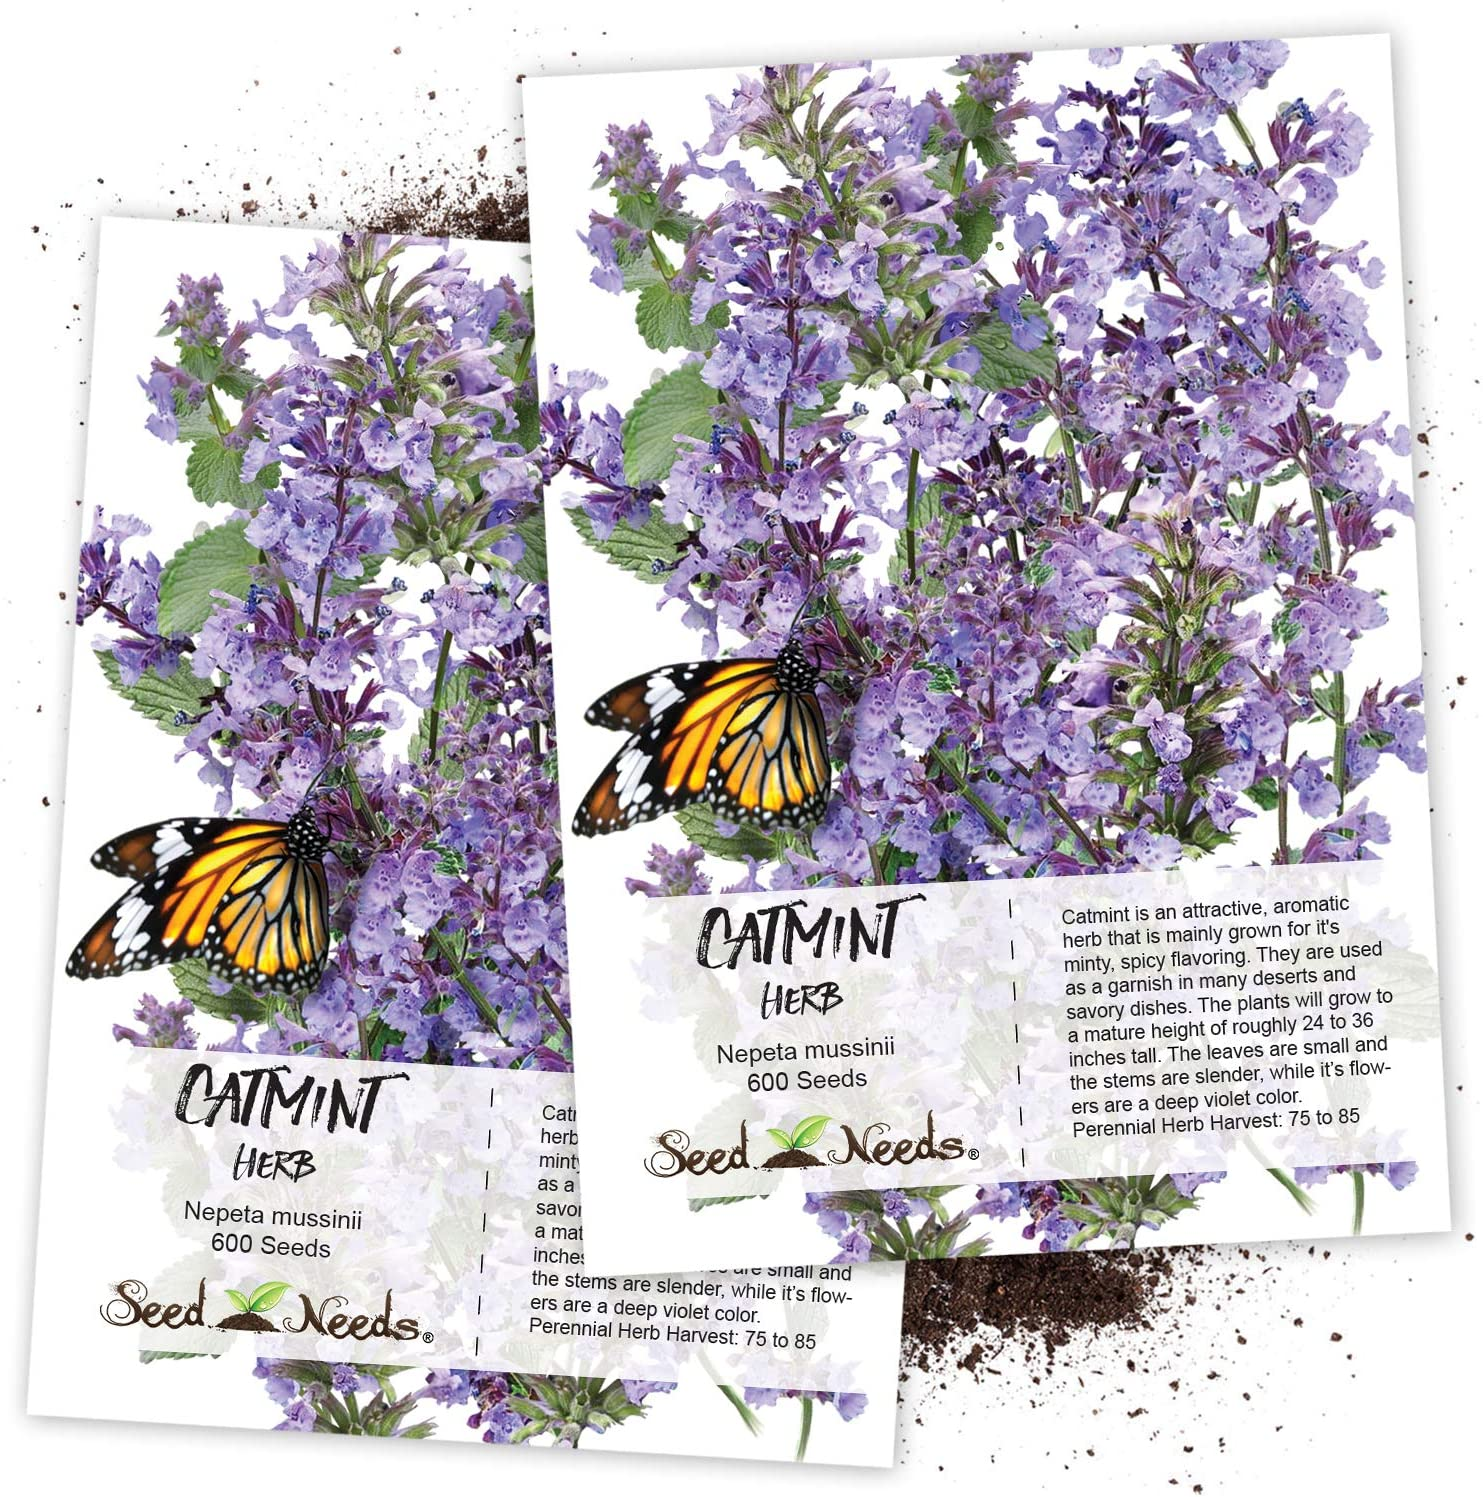 Amazon Com Seed Needs Catmint Herb Nepeta Mussinii Twin Pack